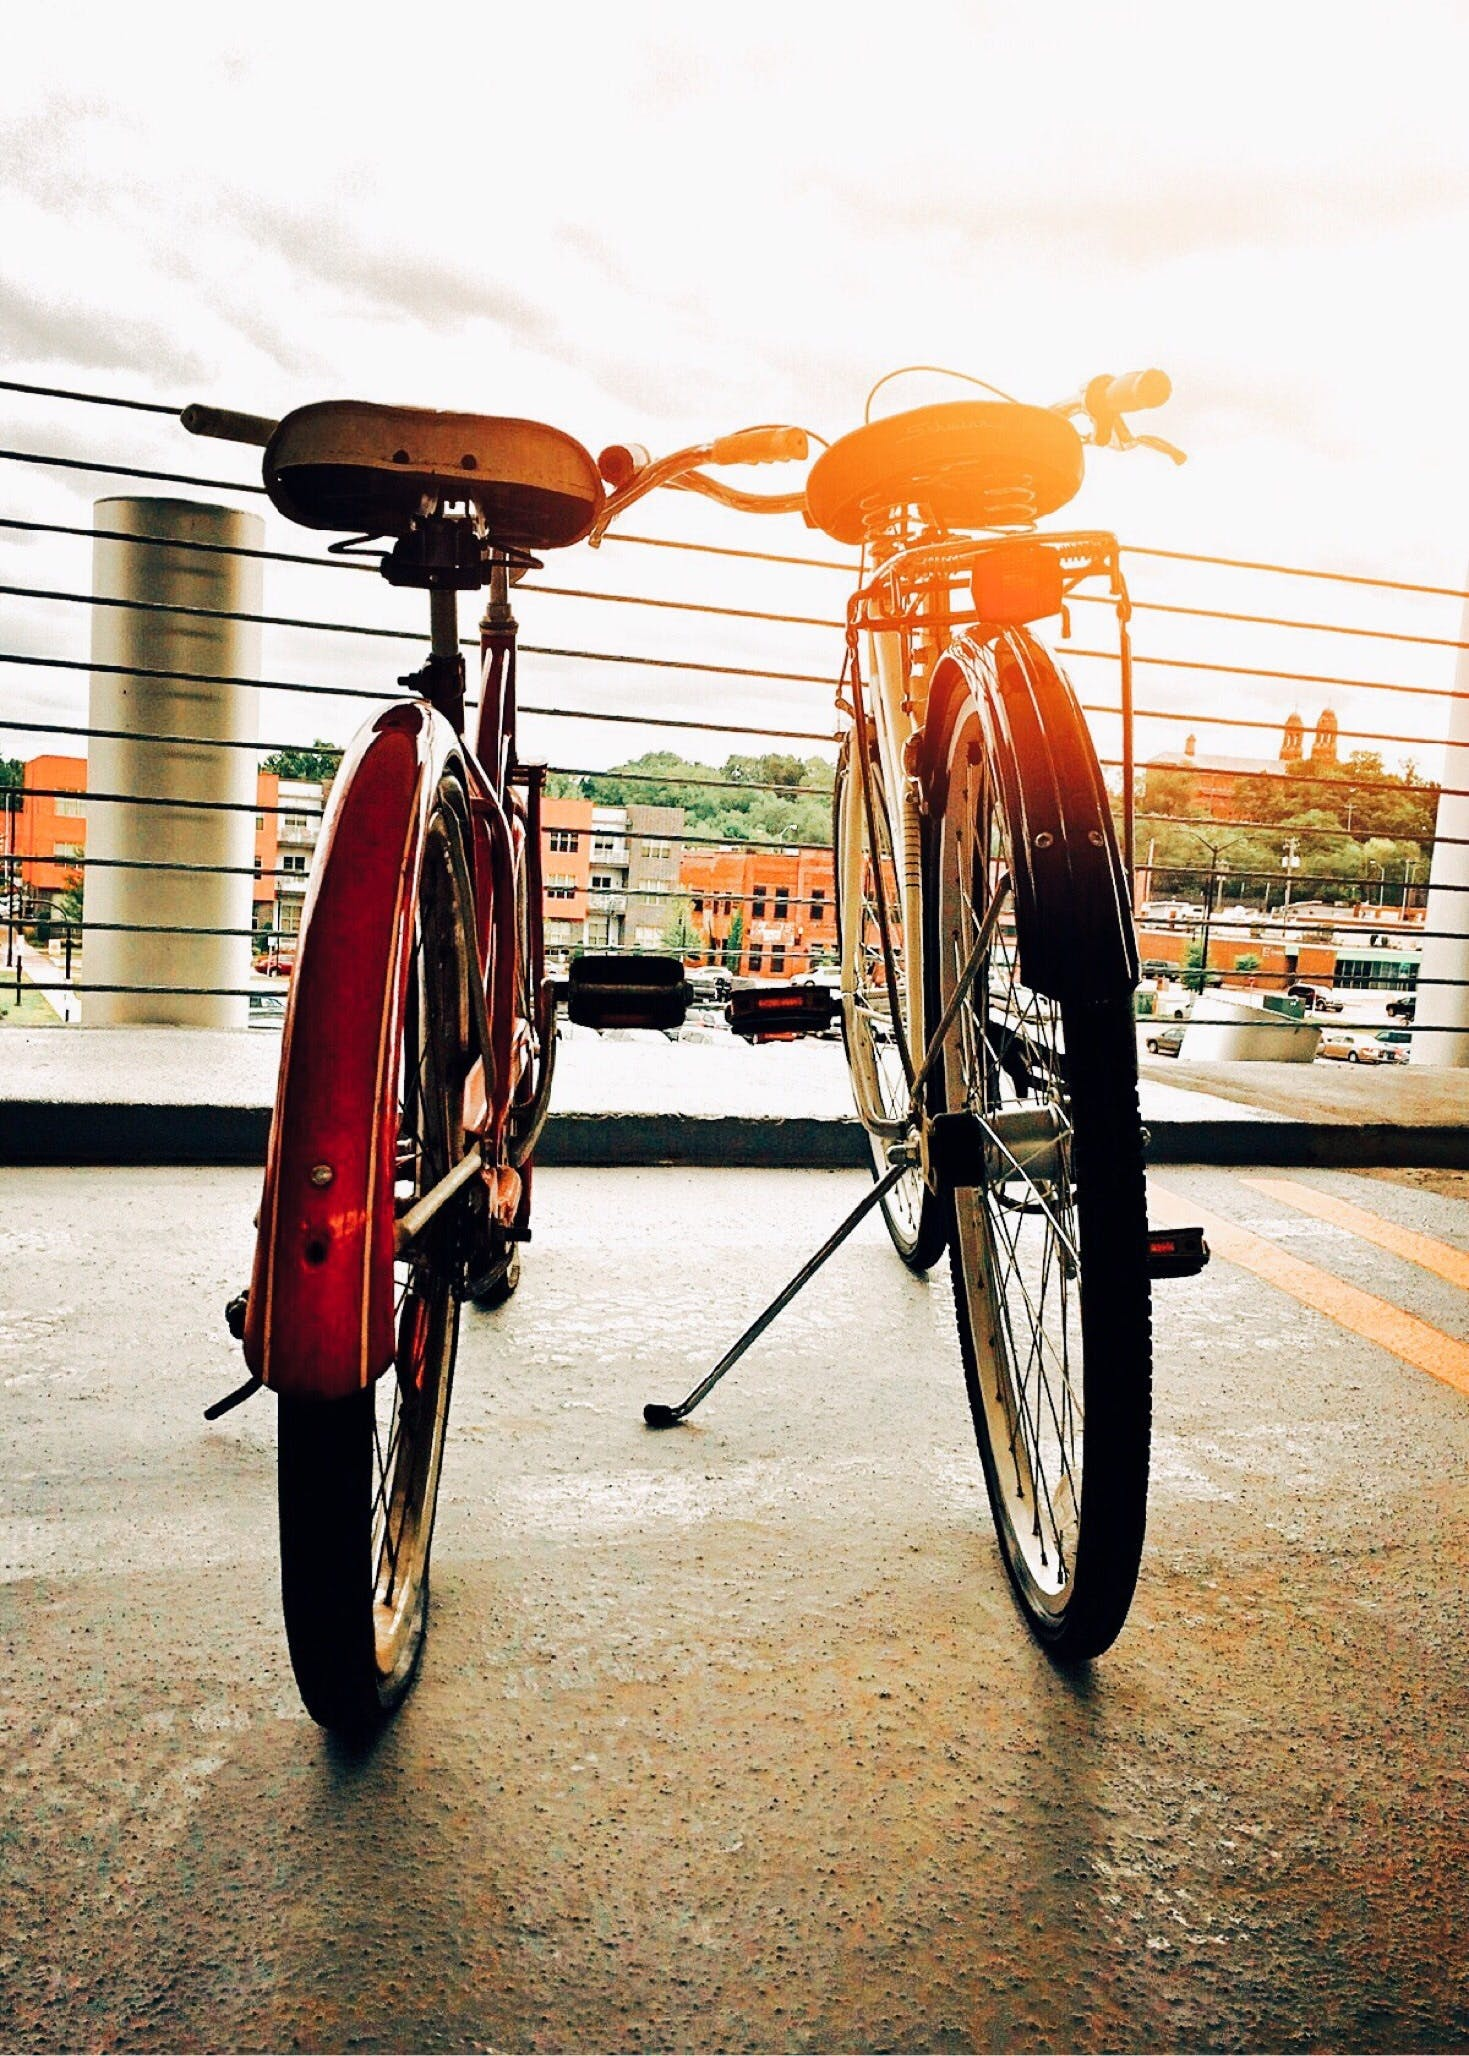 Two Bicycles Parked Upright